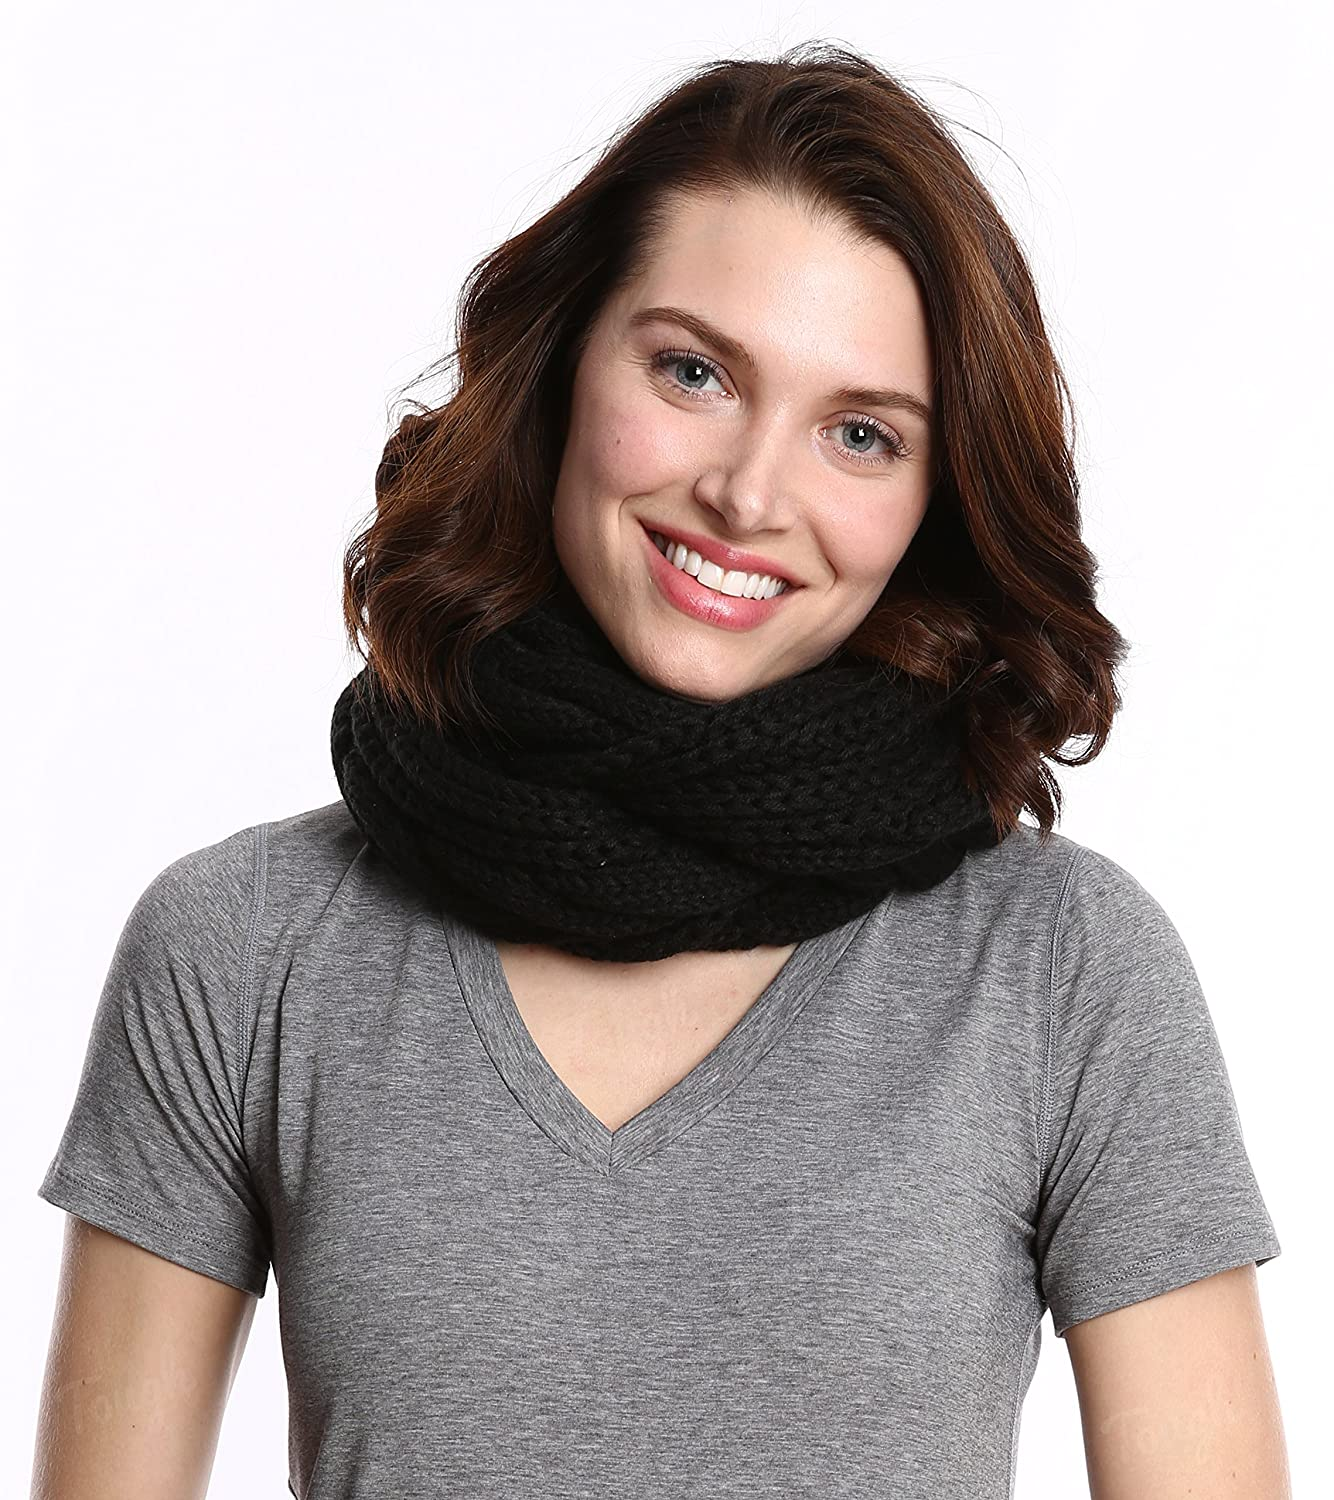 4ac8d9eb34a Chunky Cable Knit Infinity Scarf by Tough Headwear - Stay Warm & Stylish  Year Round - Circle Loop Scarves for Women & Men